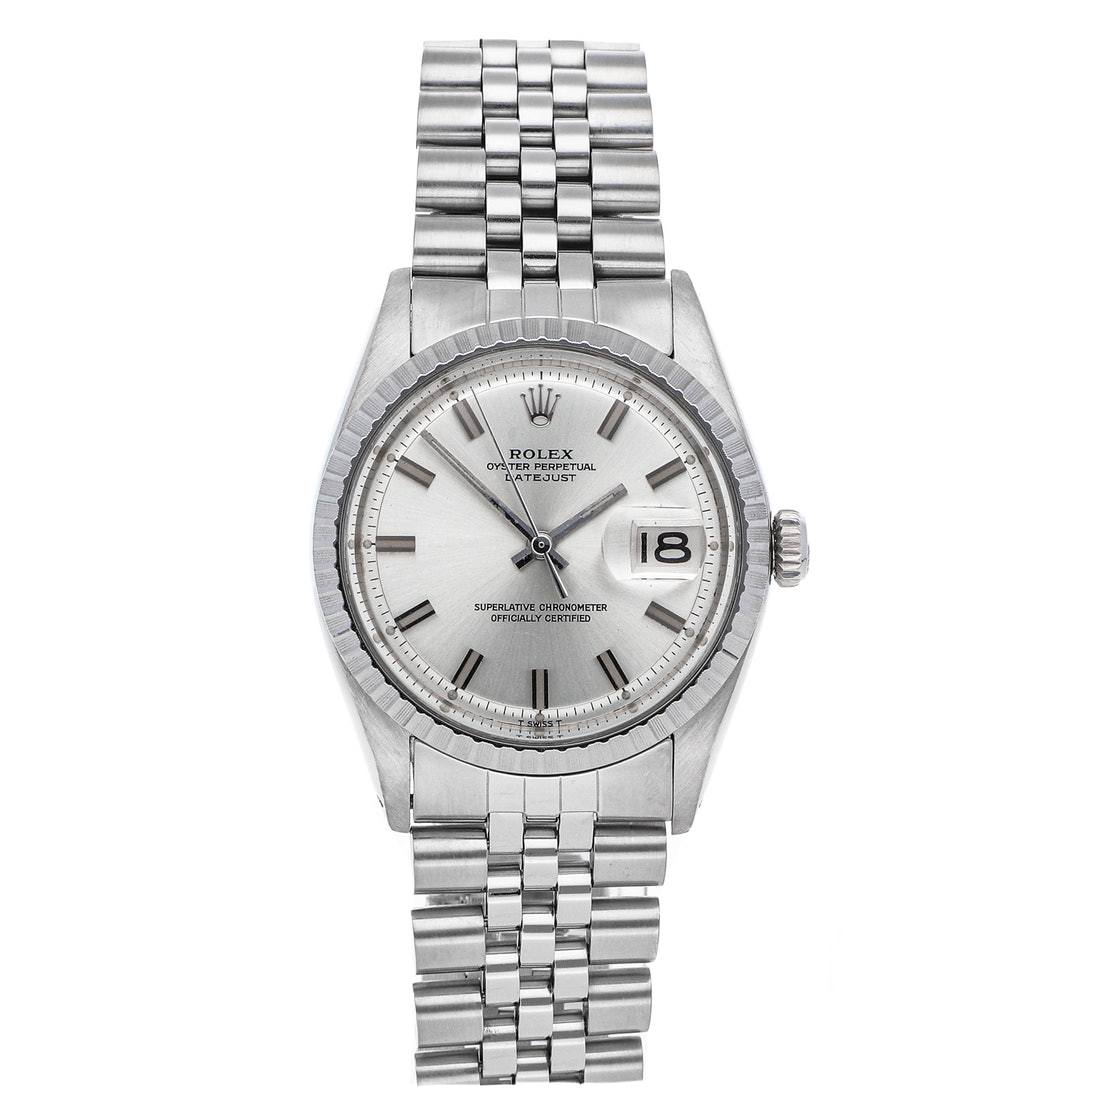 Rolex Datejust 1603 via Watchbox The Watchbox